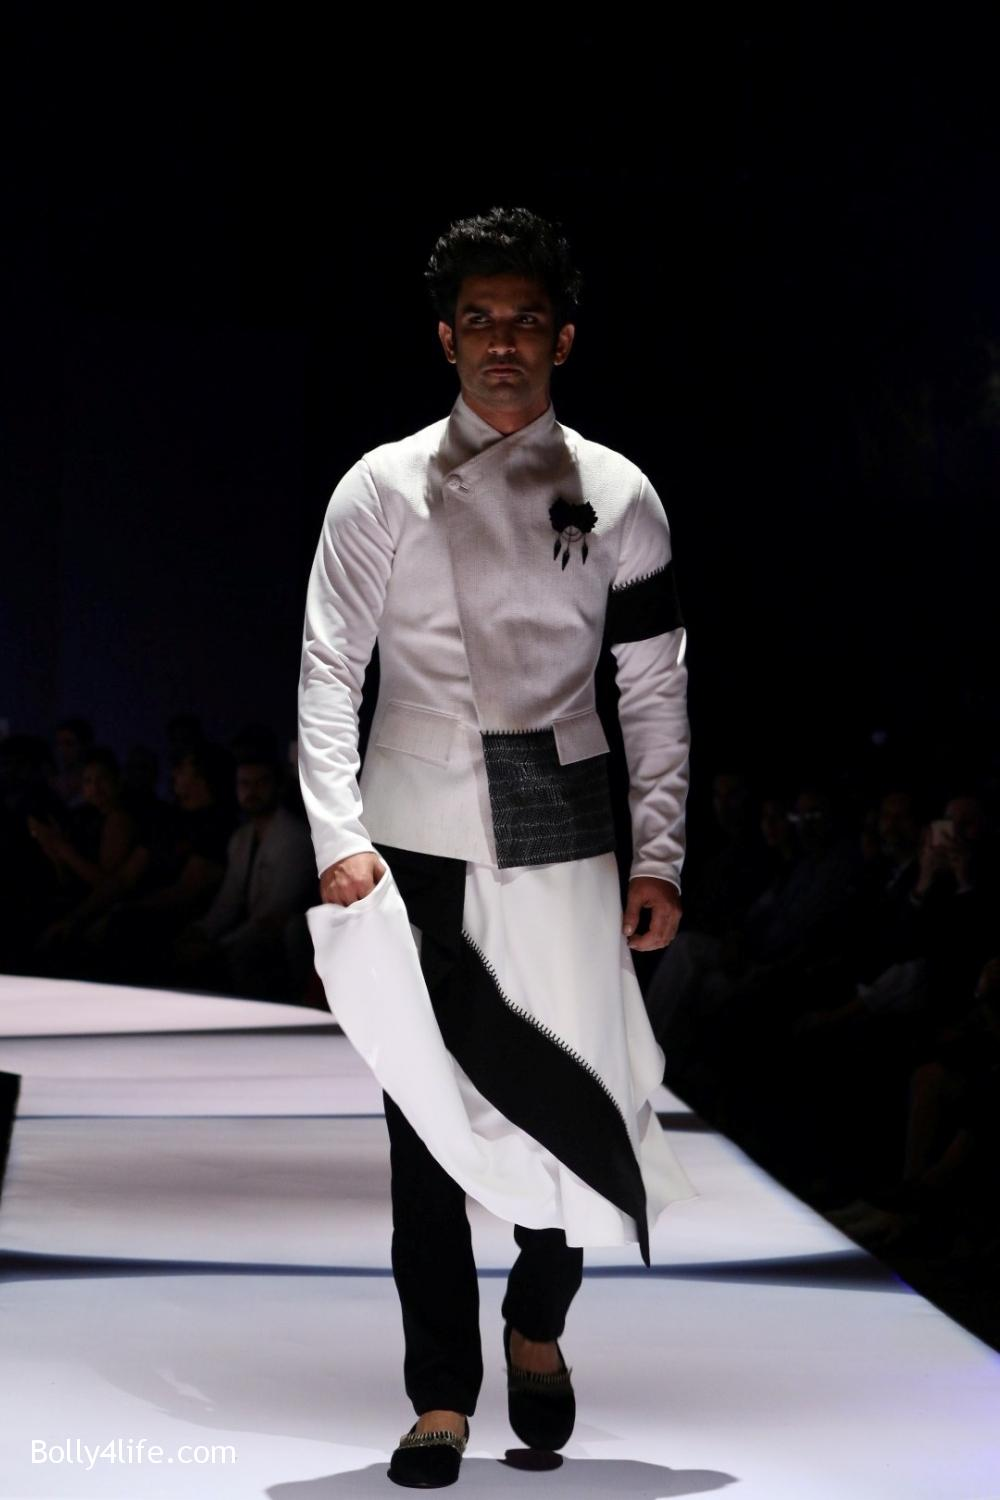 Sushant-Singh-Rajput-during-the-Van-Heusen-GQ-Fashion-Nights-in-Mumbai-1.jpg